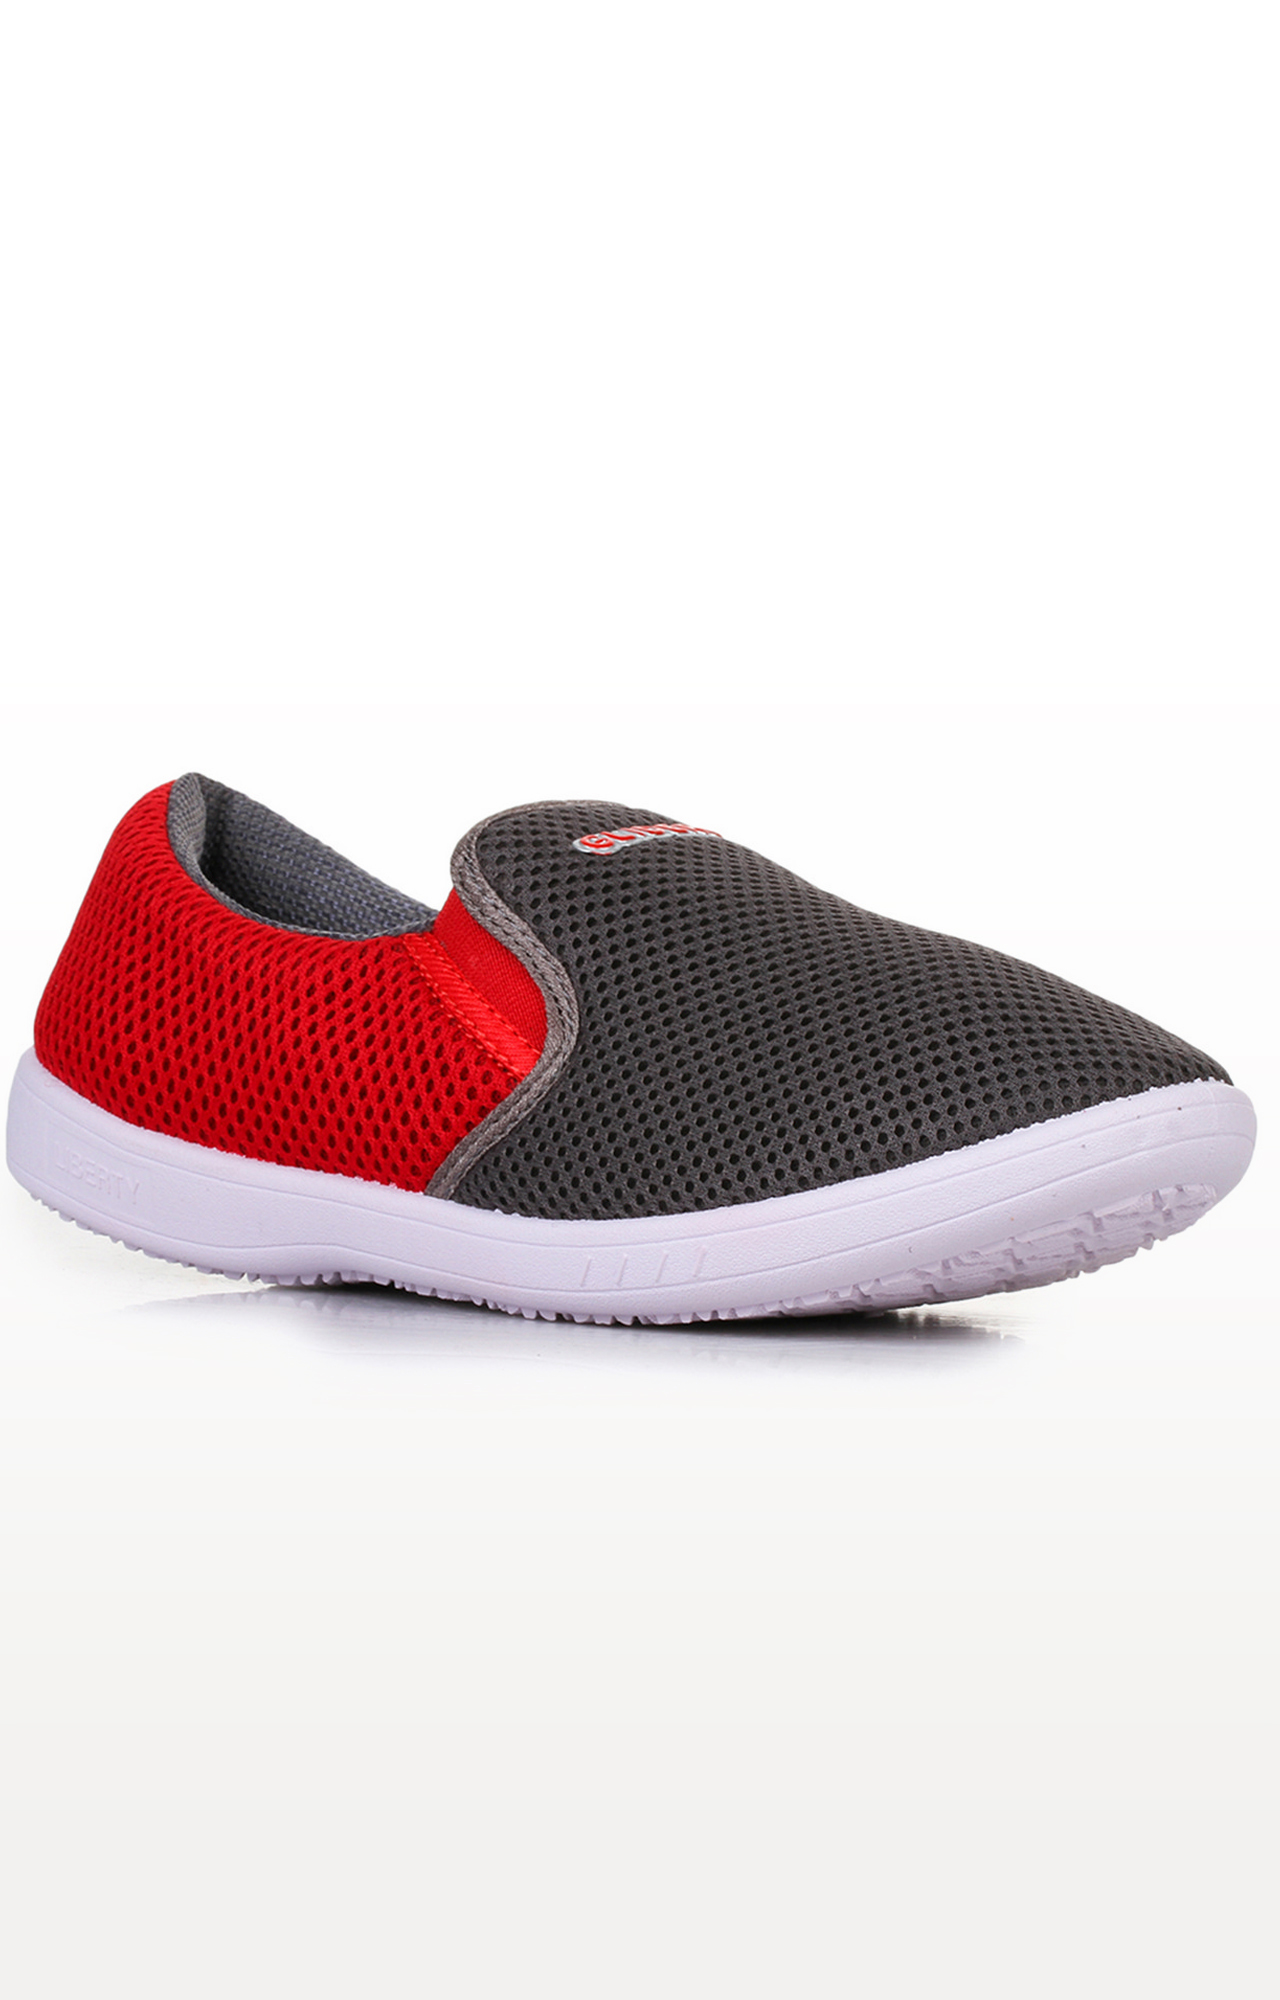 Liberty   Gliders by Liberty Grey Sports Shoes